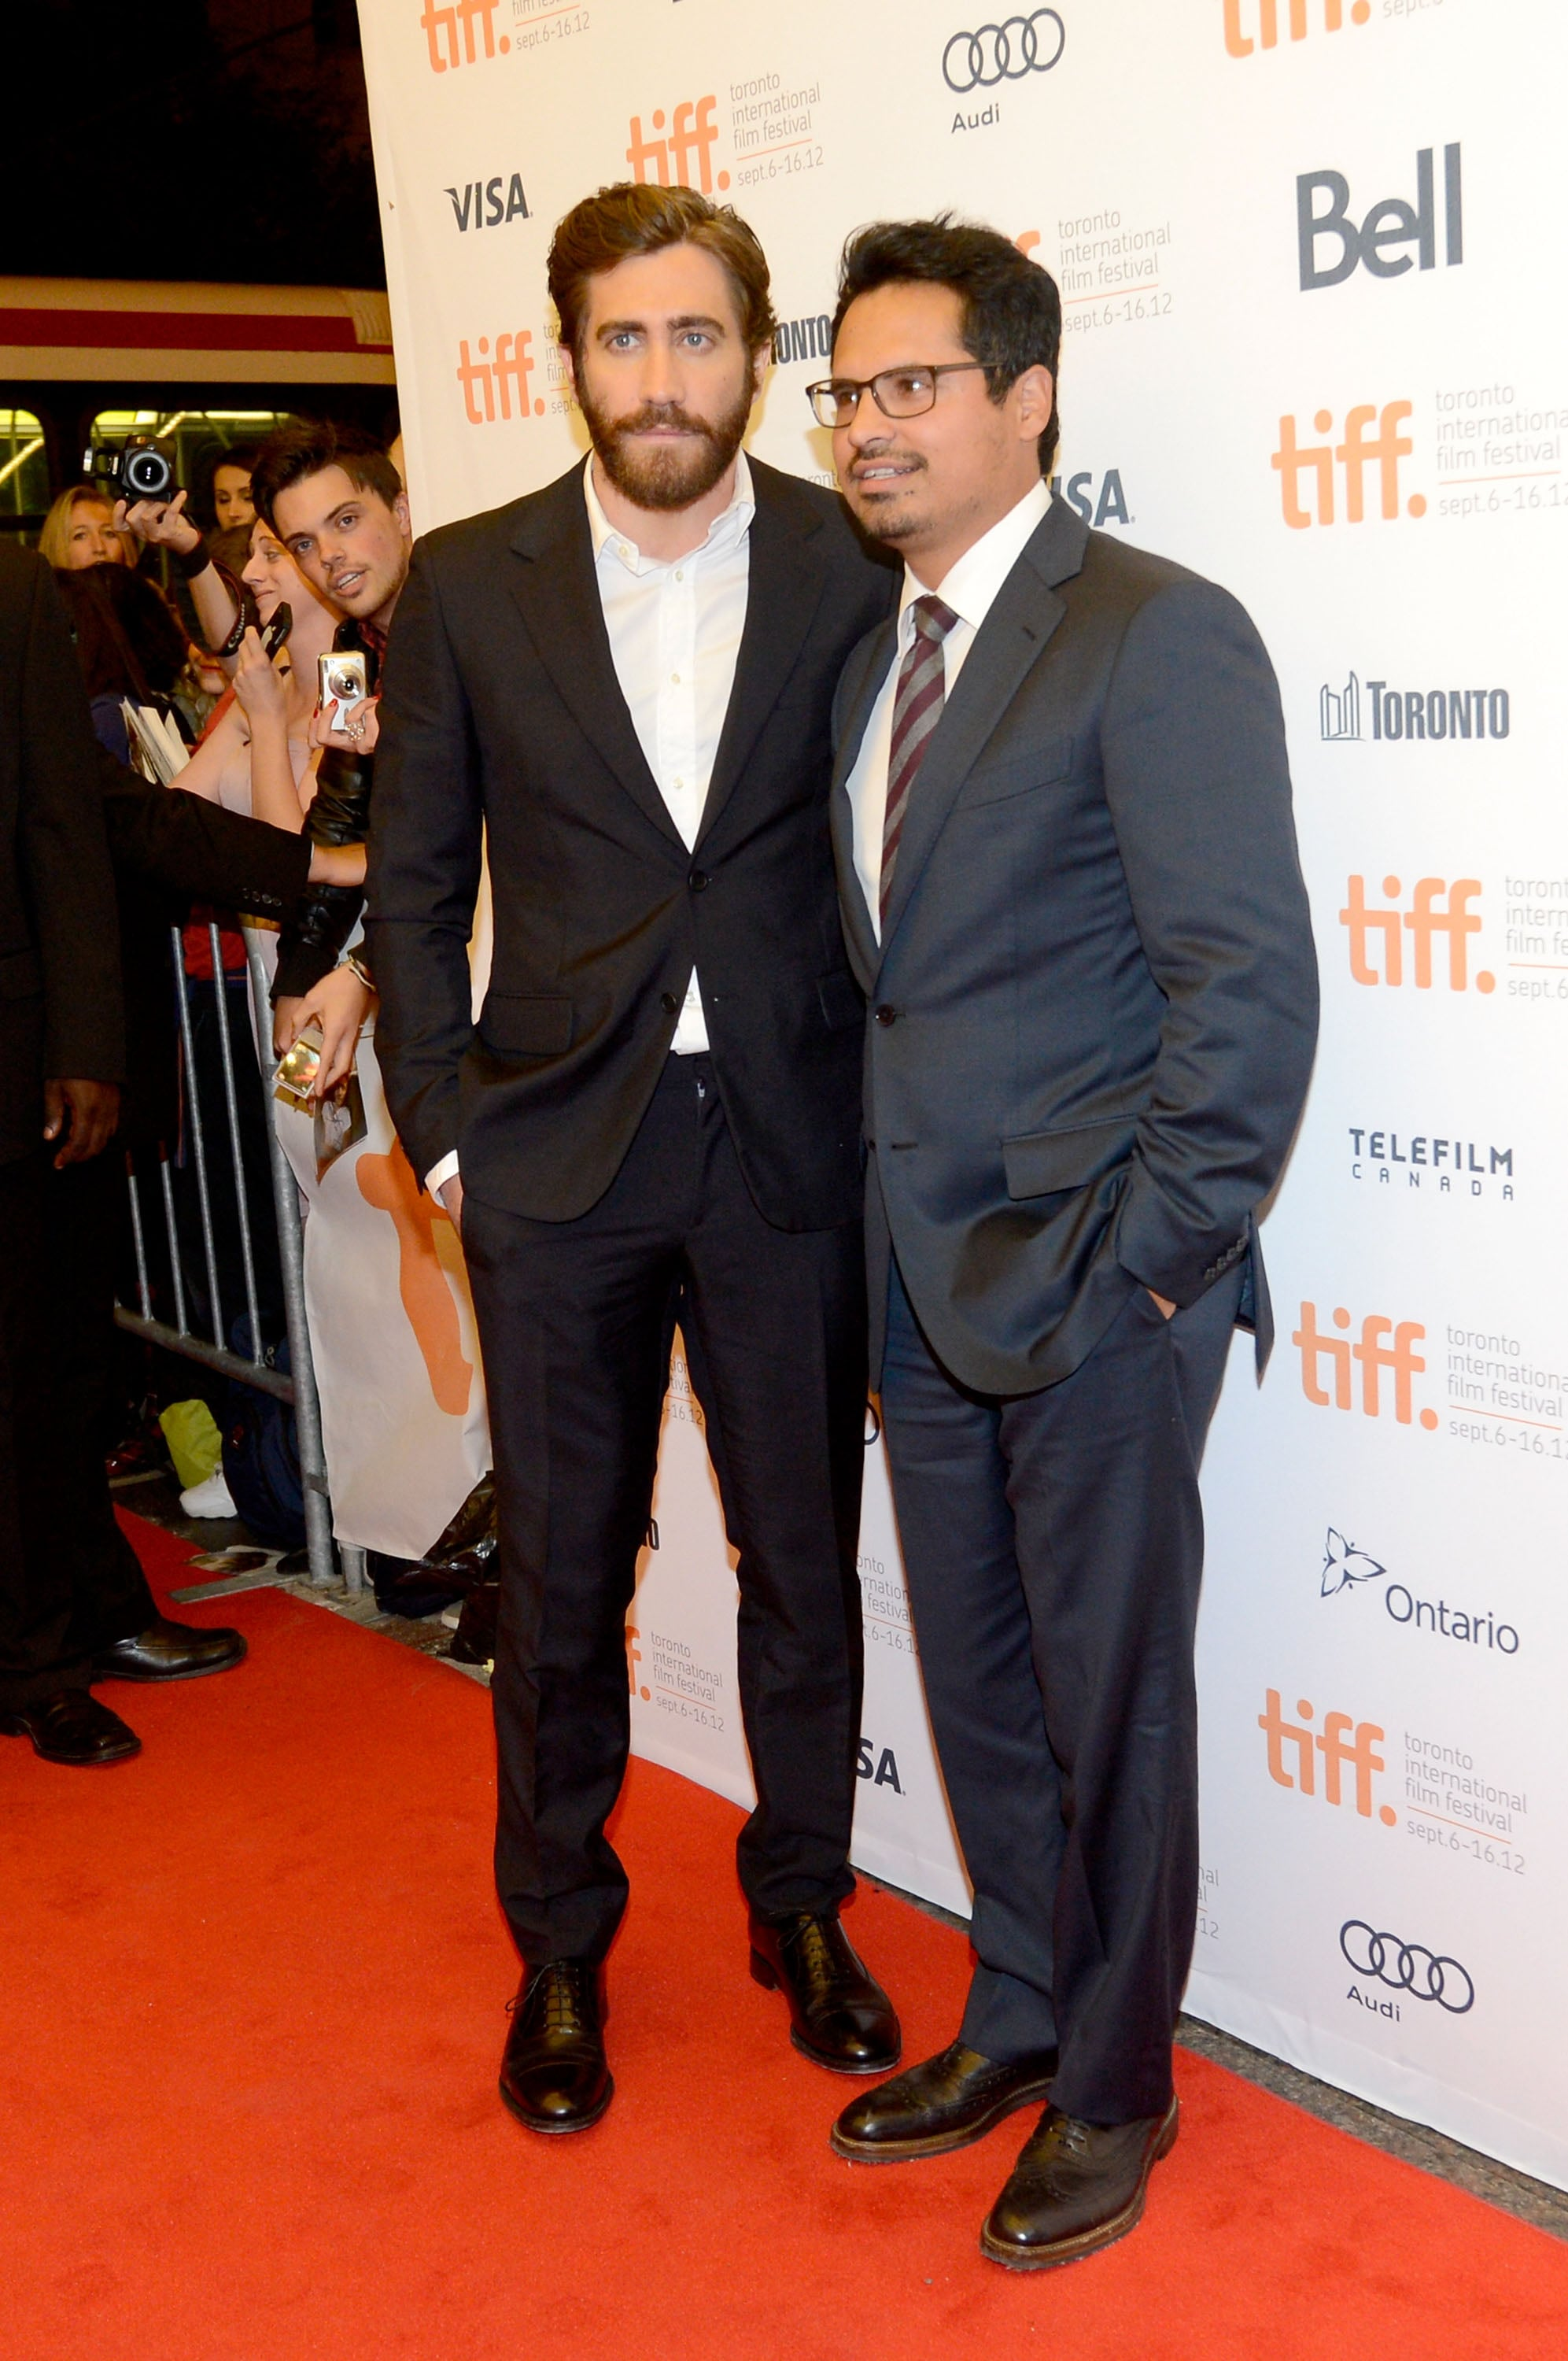 Jake Gyllenhaal Teams Up With Anna Kendrick at TIFF